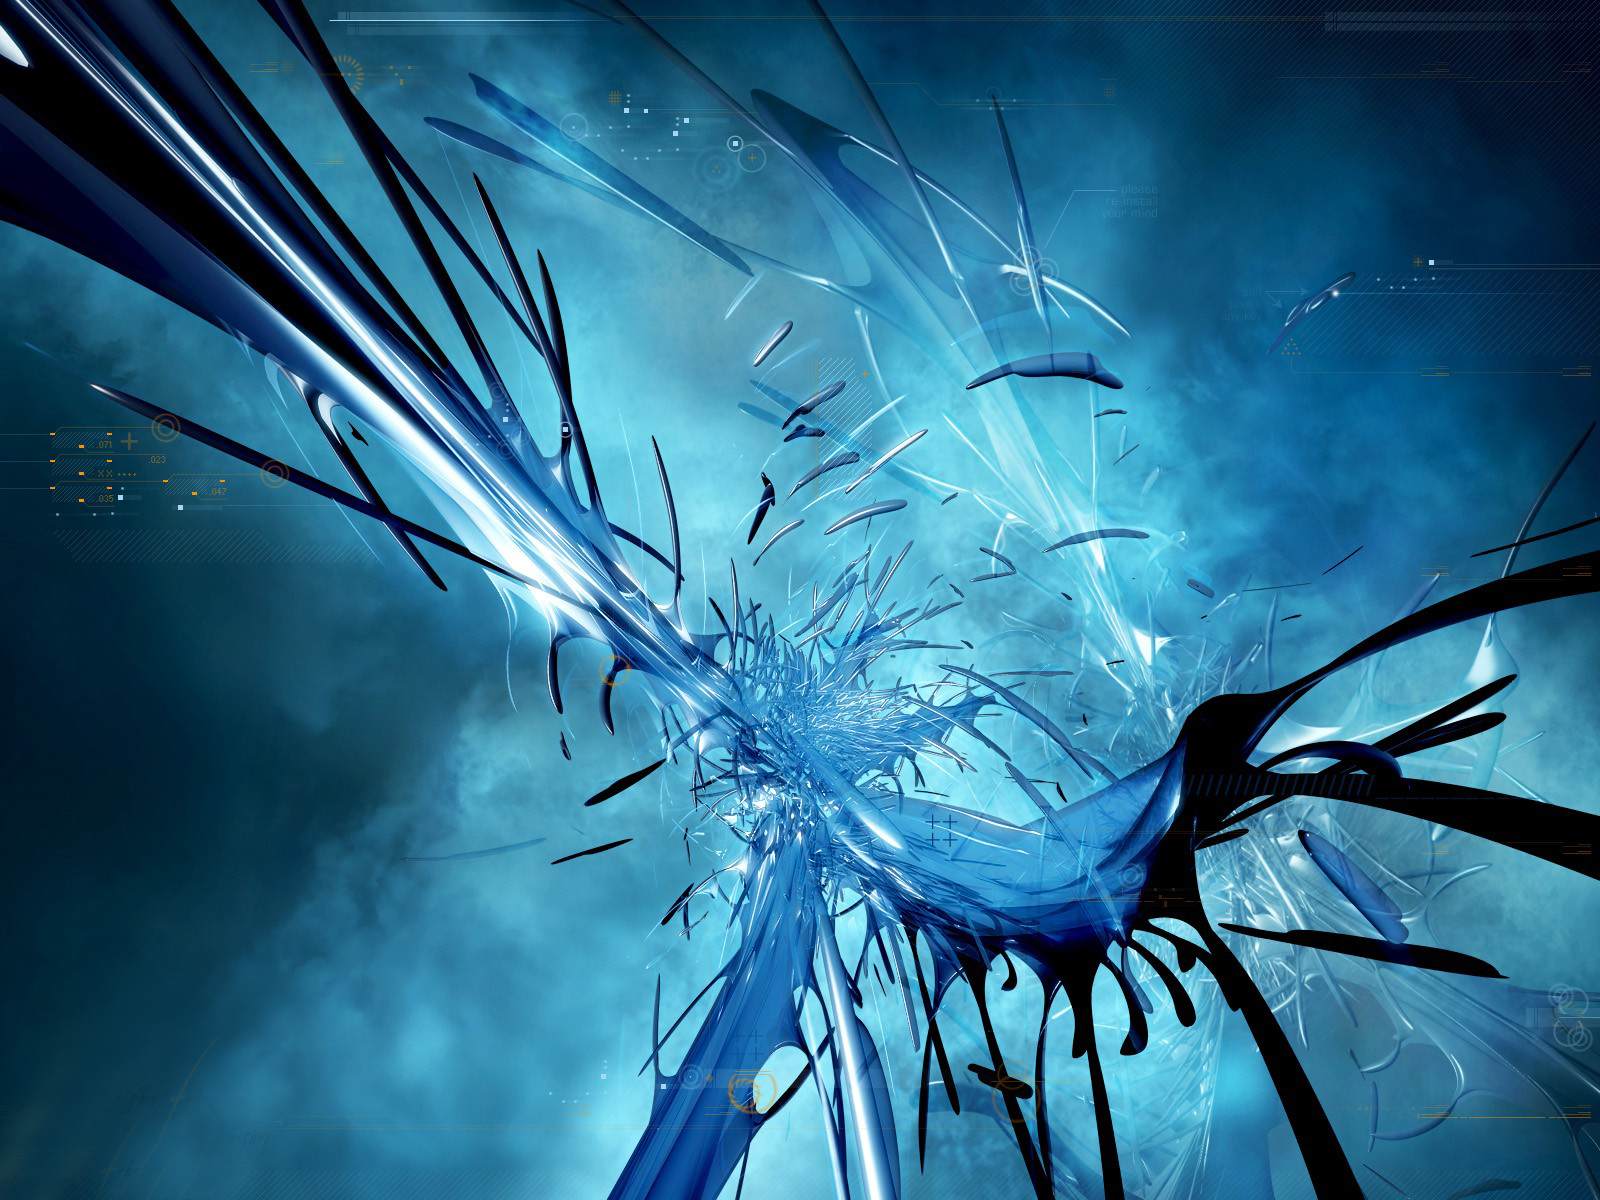 Full hd p abstract wallpapers hd desktop backgrounds 1600x1200 voltagebd Gallery